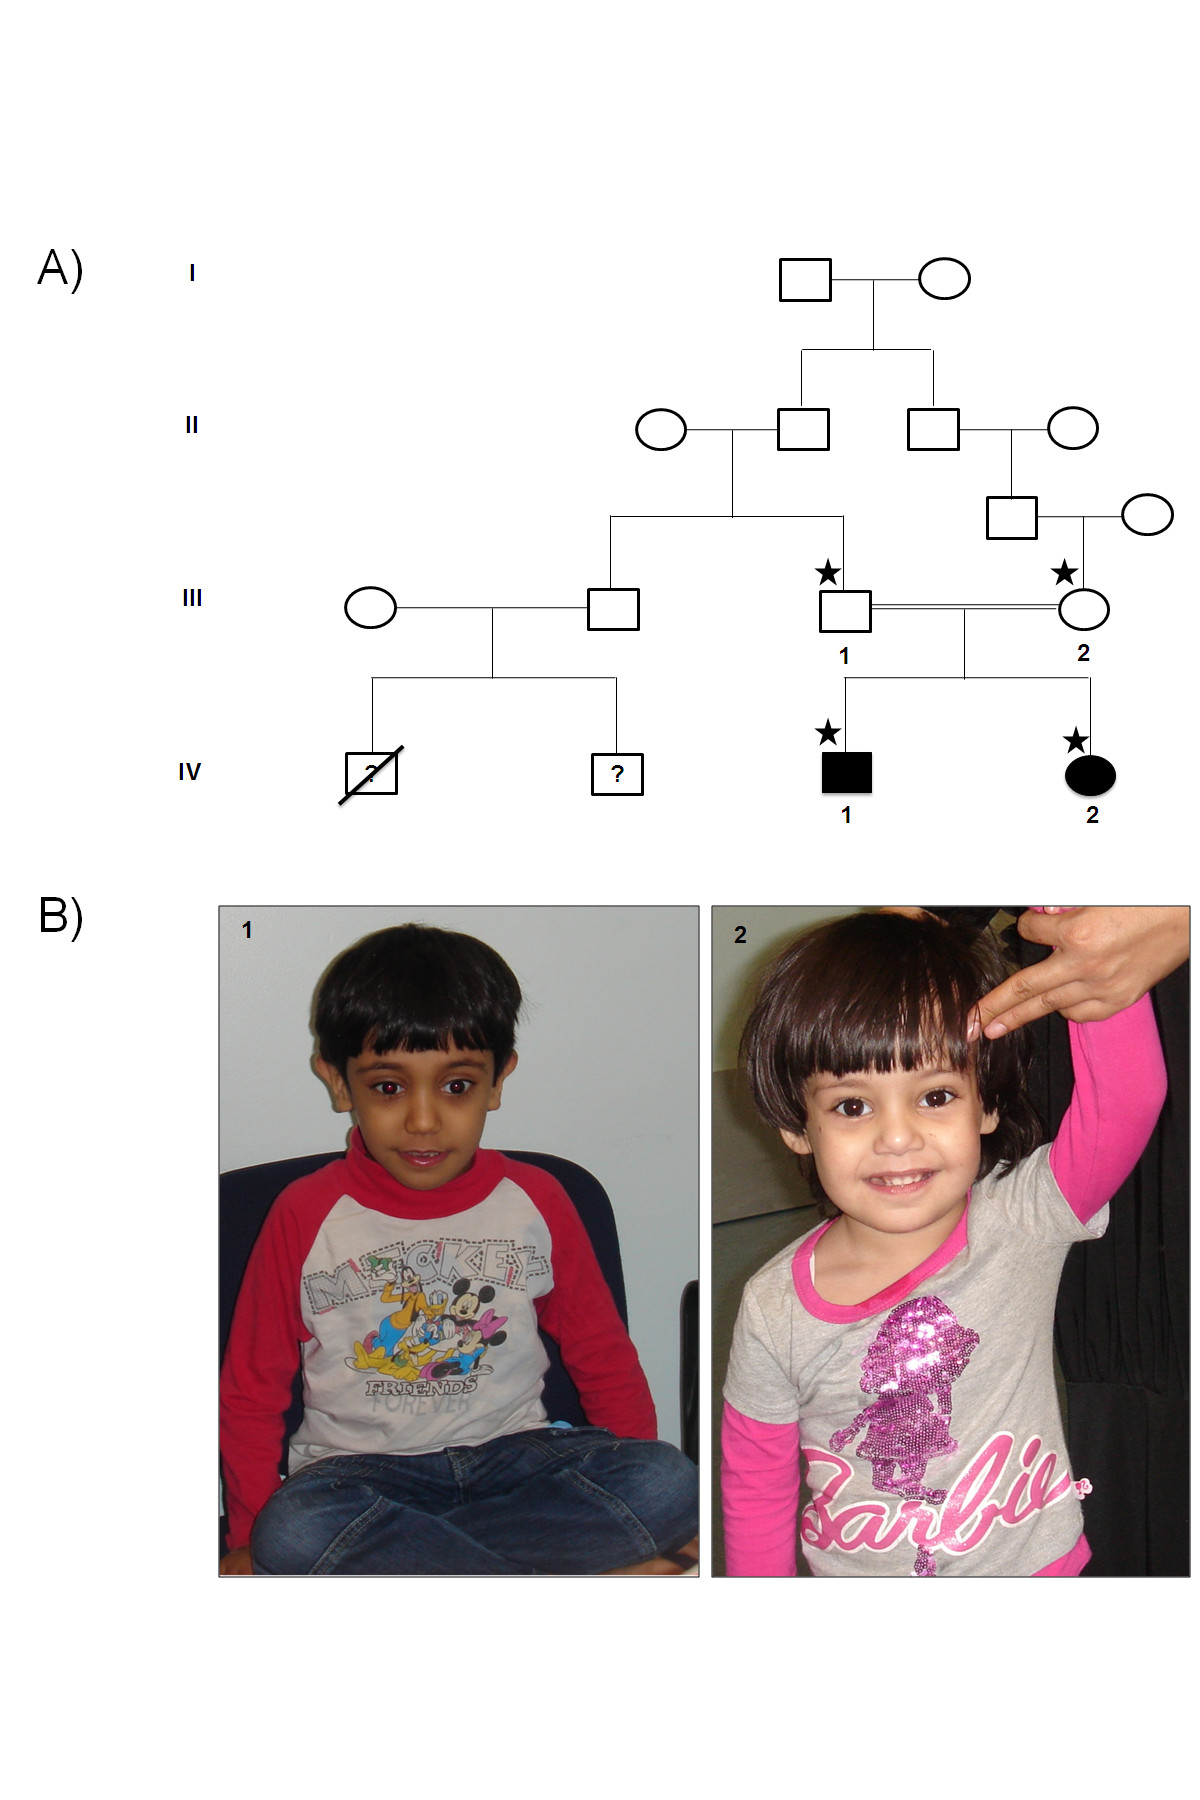 https://static-content.springer.com/image/art%3A10.1186%2F1750-1172-8-87/MediaObjects/13023_2013_Article_635_Fig1_HTML.jpg